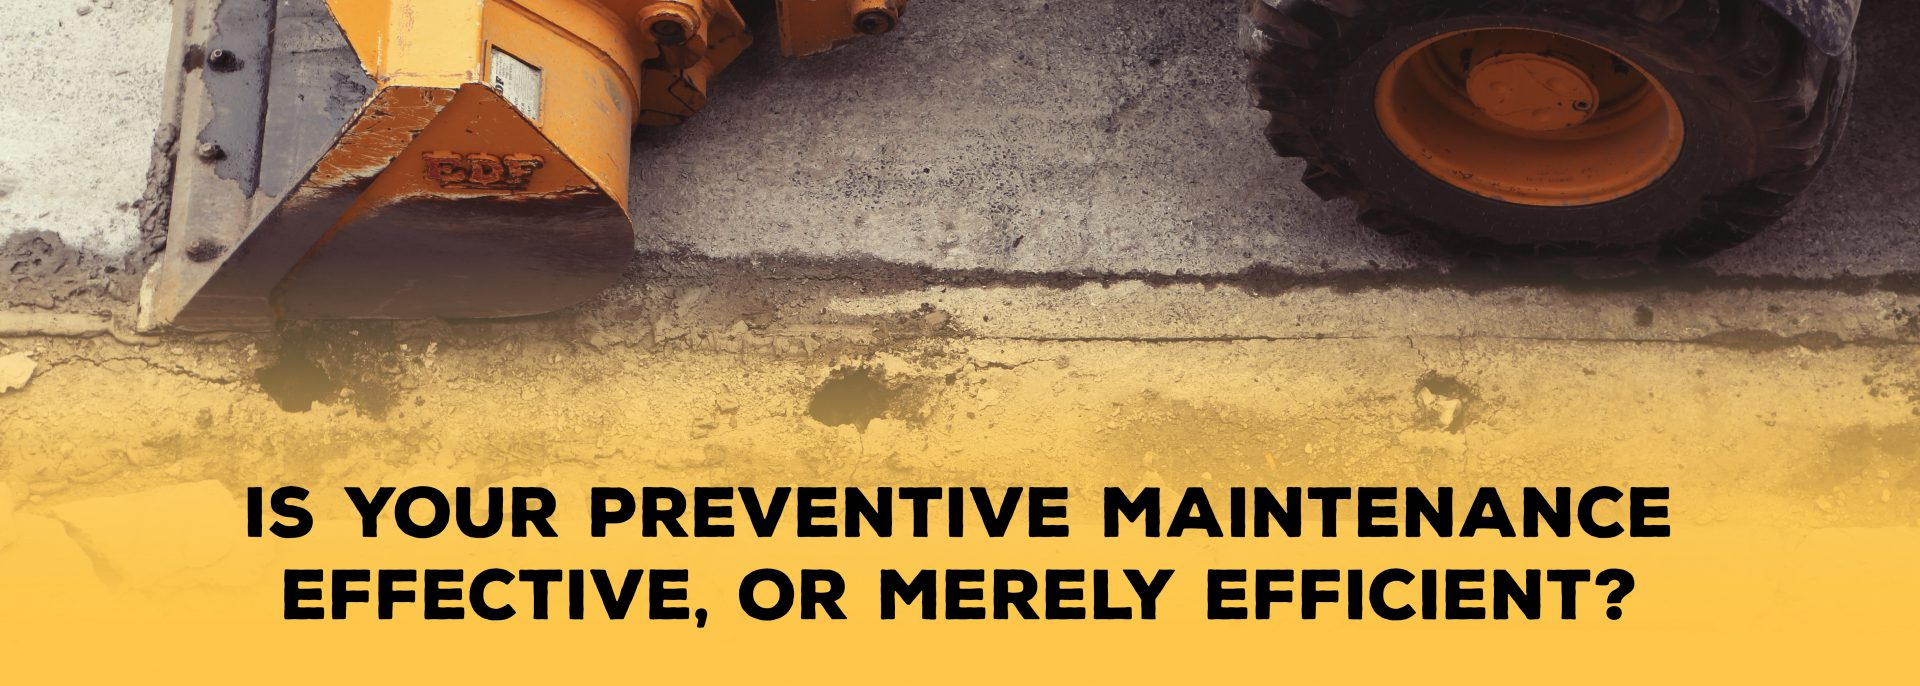 Is Your Preventive Maintenance Effective, or Merely Efficient | ADI Agency